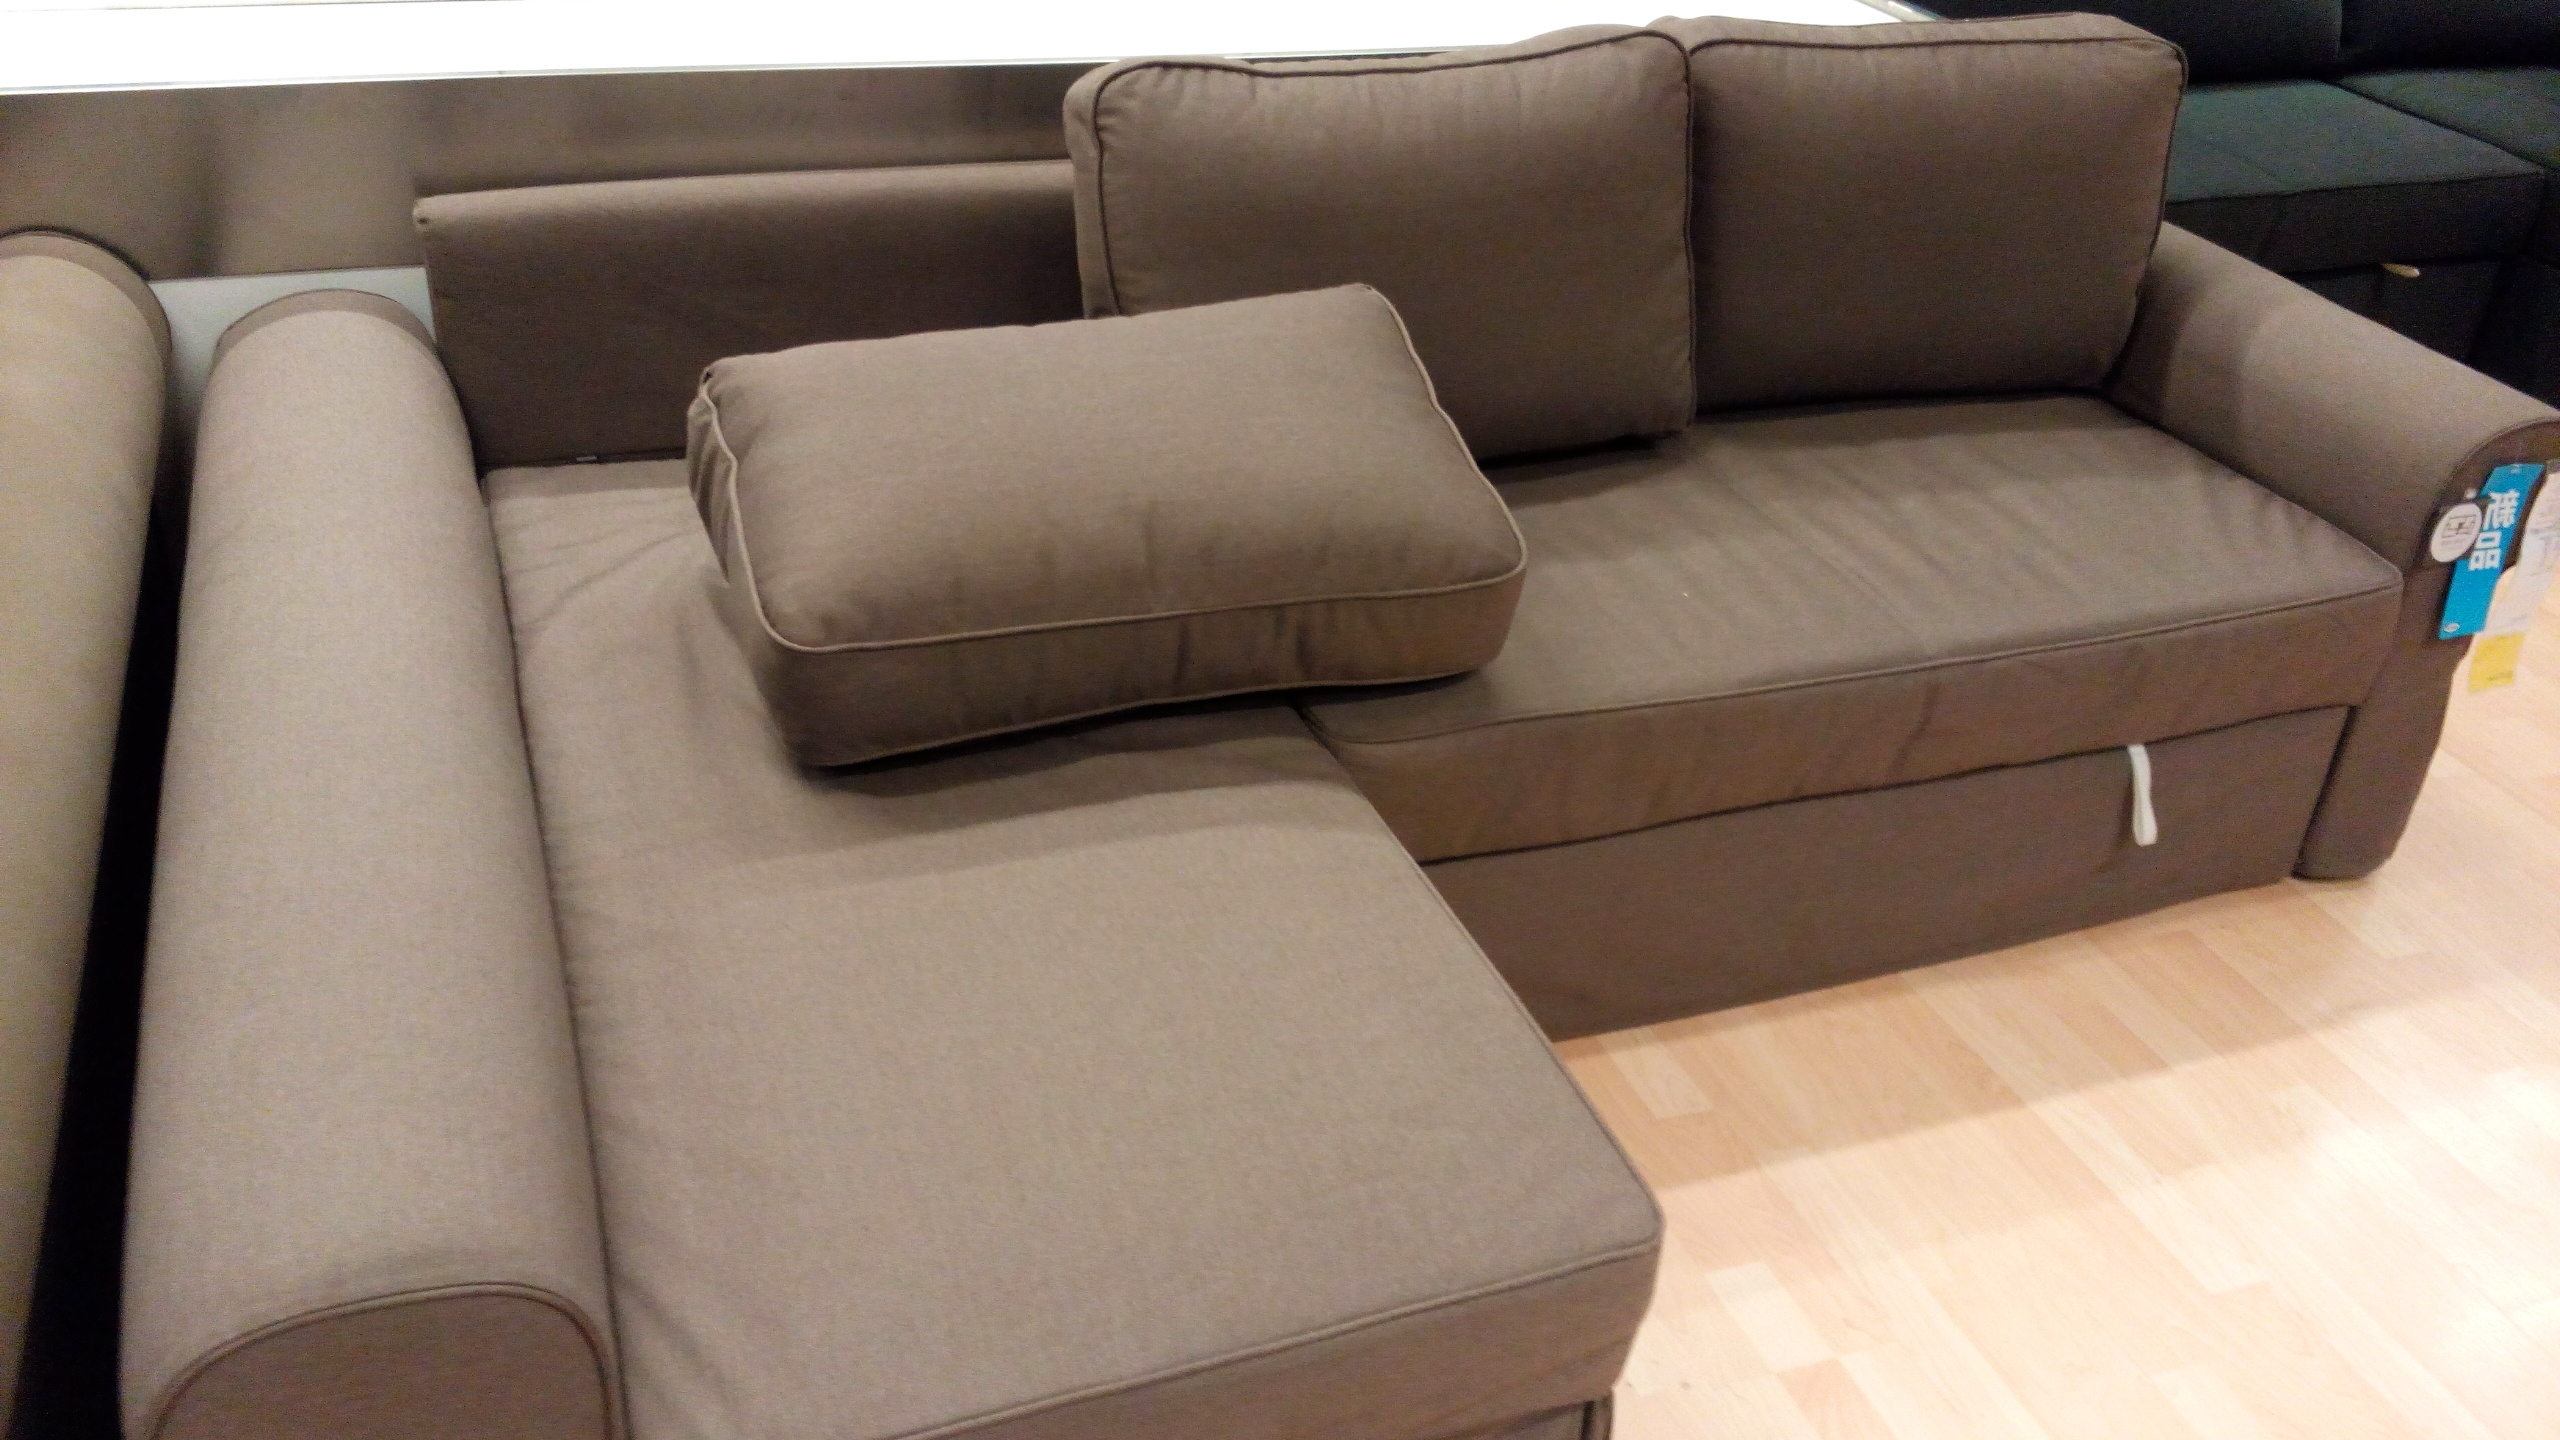 Ikea Vilasund And Backabro Review – Return Of The Sofa Bed Clones! In Current Sofa Beds With Chaise (View 9 of 15)